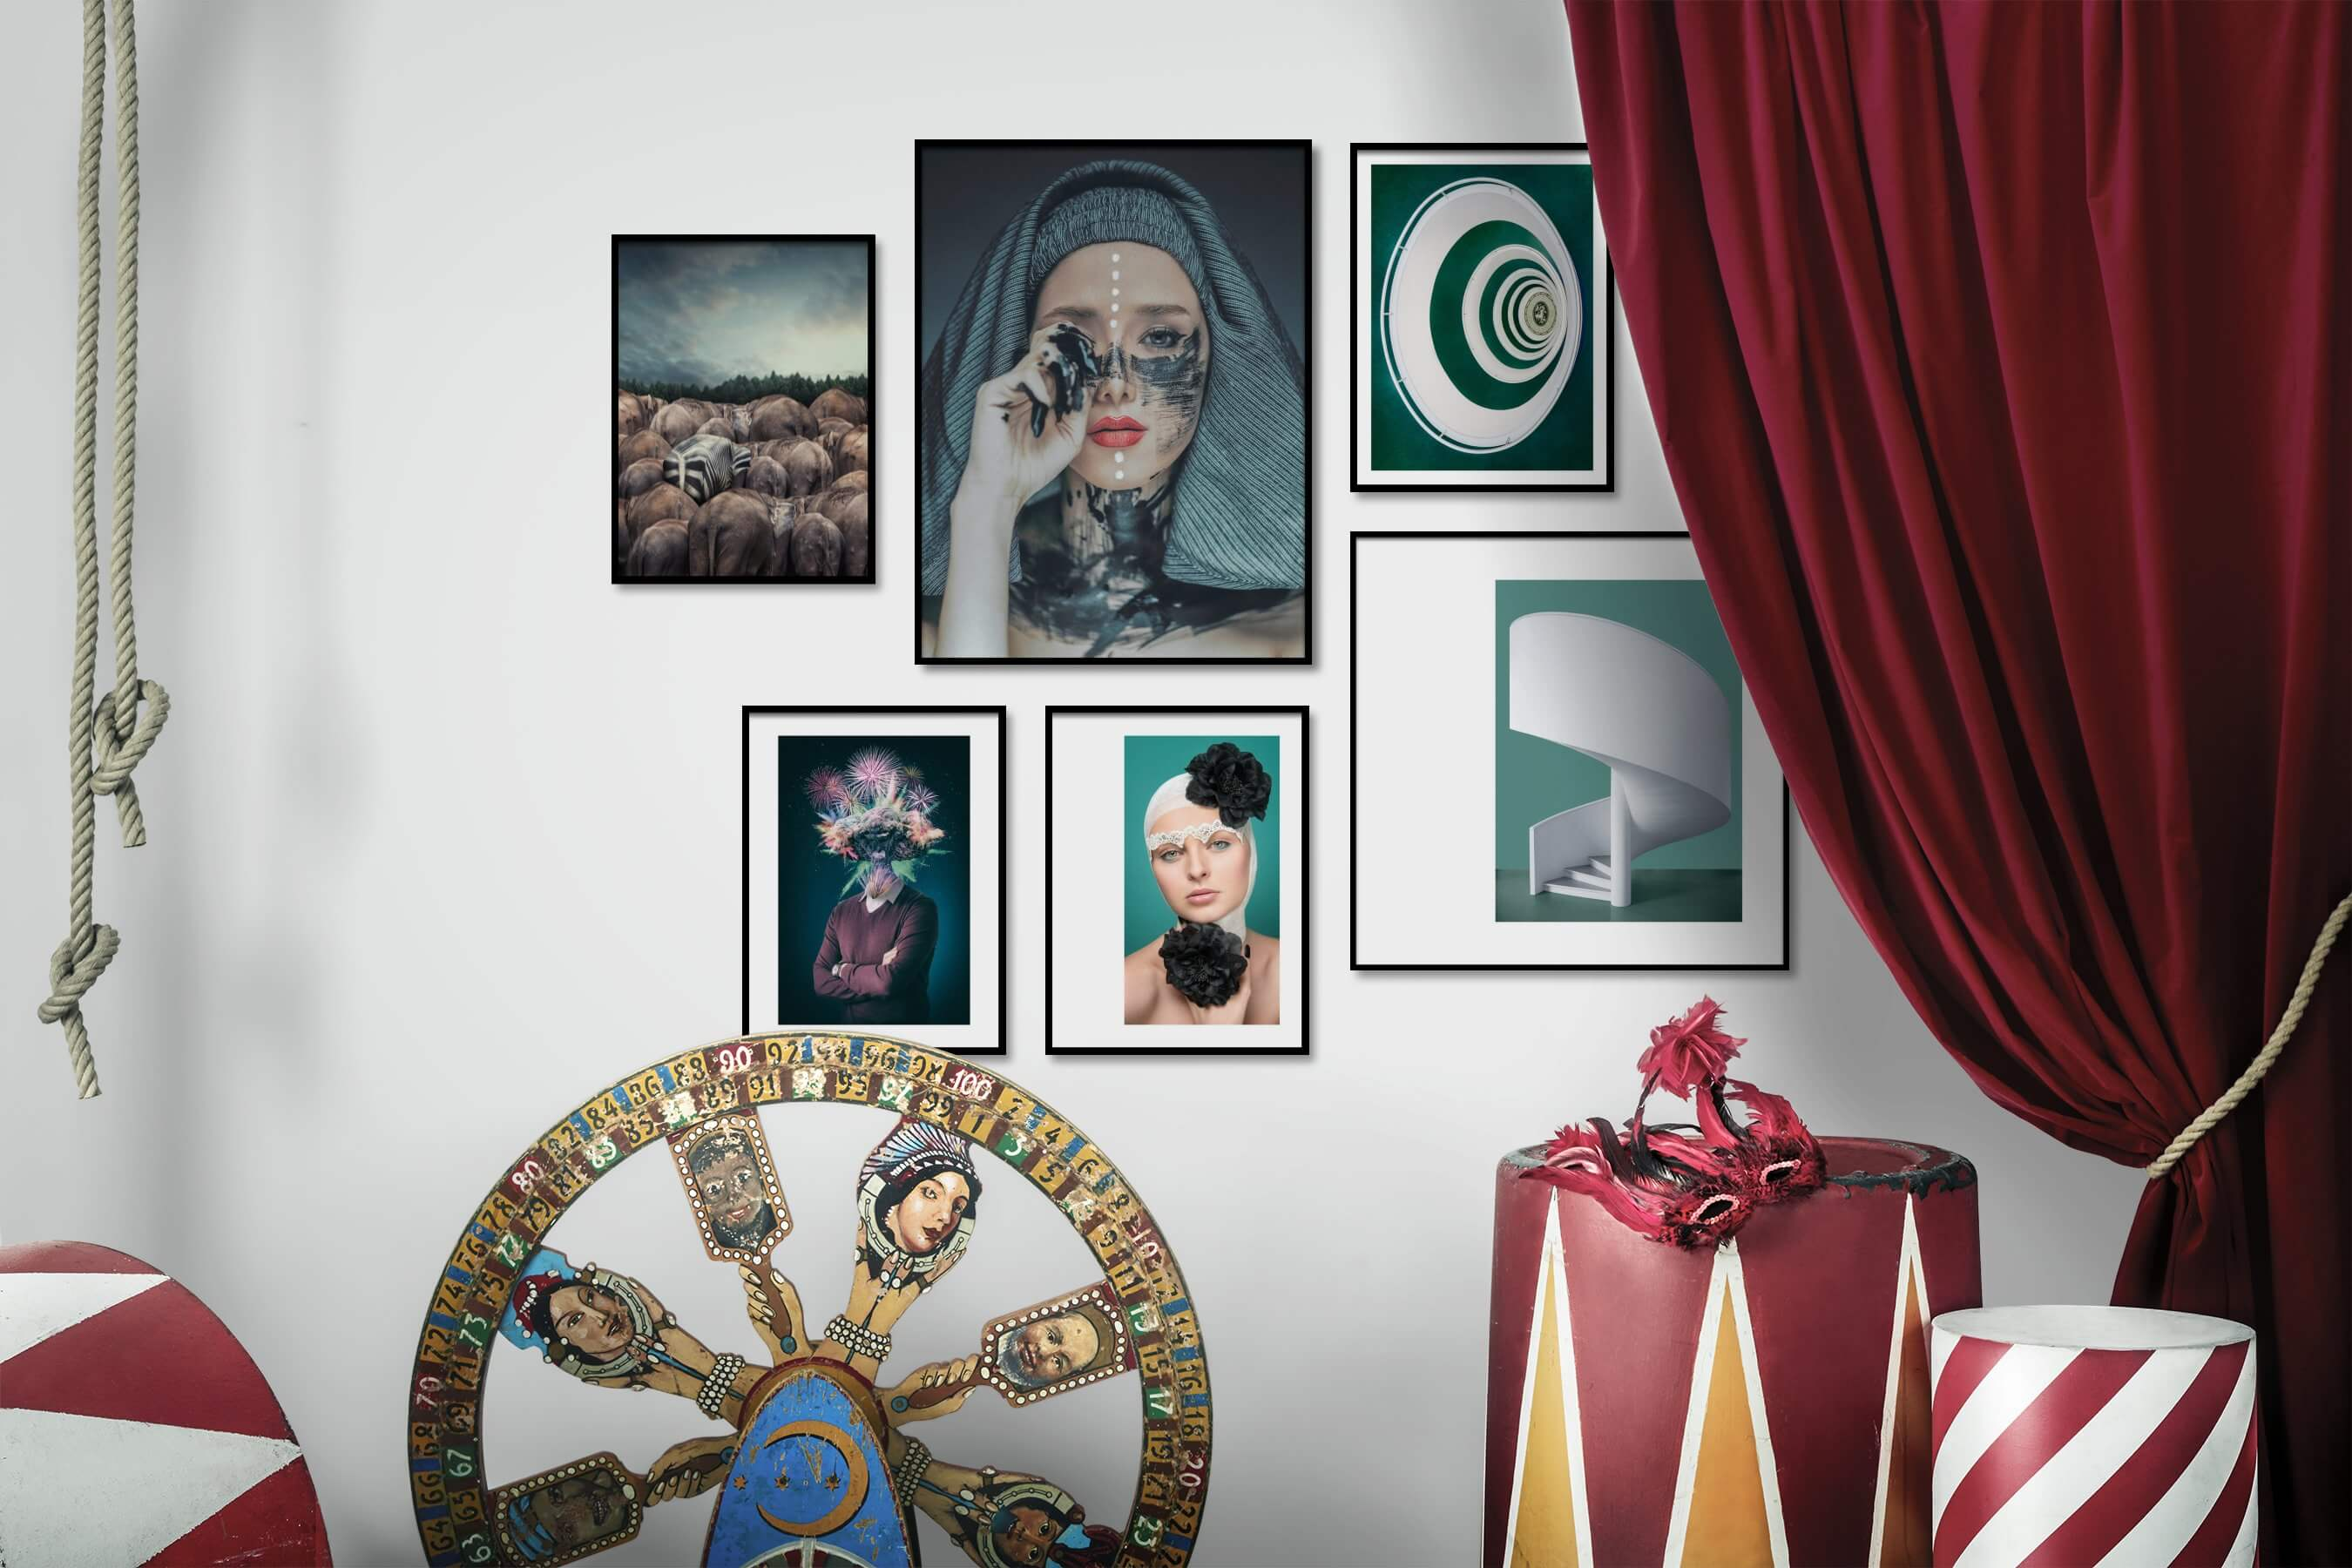 Gallery wall idea with six framed pictures arranged on a wall depicting For the Moderate, Animals, Fashion & Beauty, Artsy, and For the Minimalist